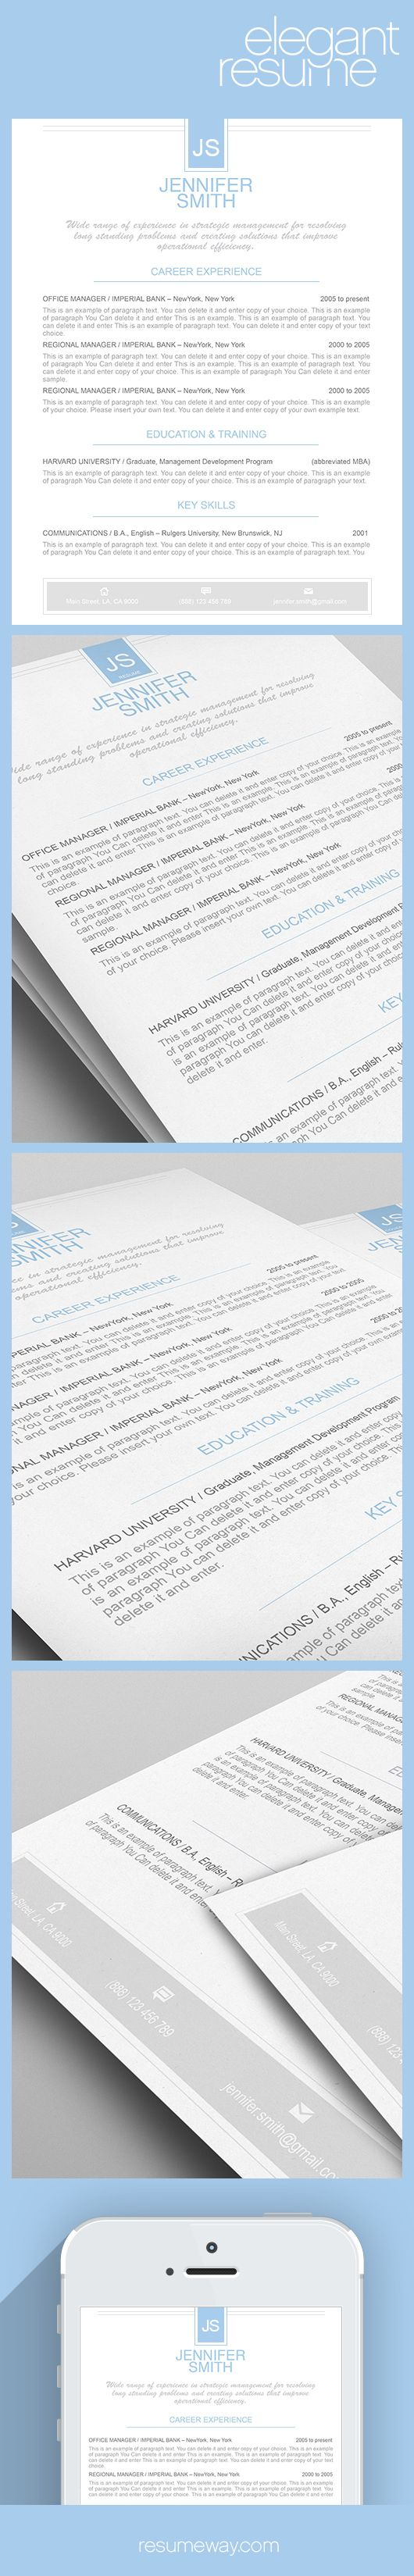 17 best images about cv word templates graphic elegant resume template 110460 premium line of resume cover letter templates easy edit ms word apple pages good idea selected by